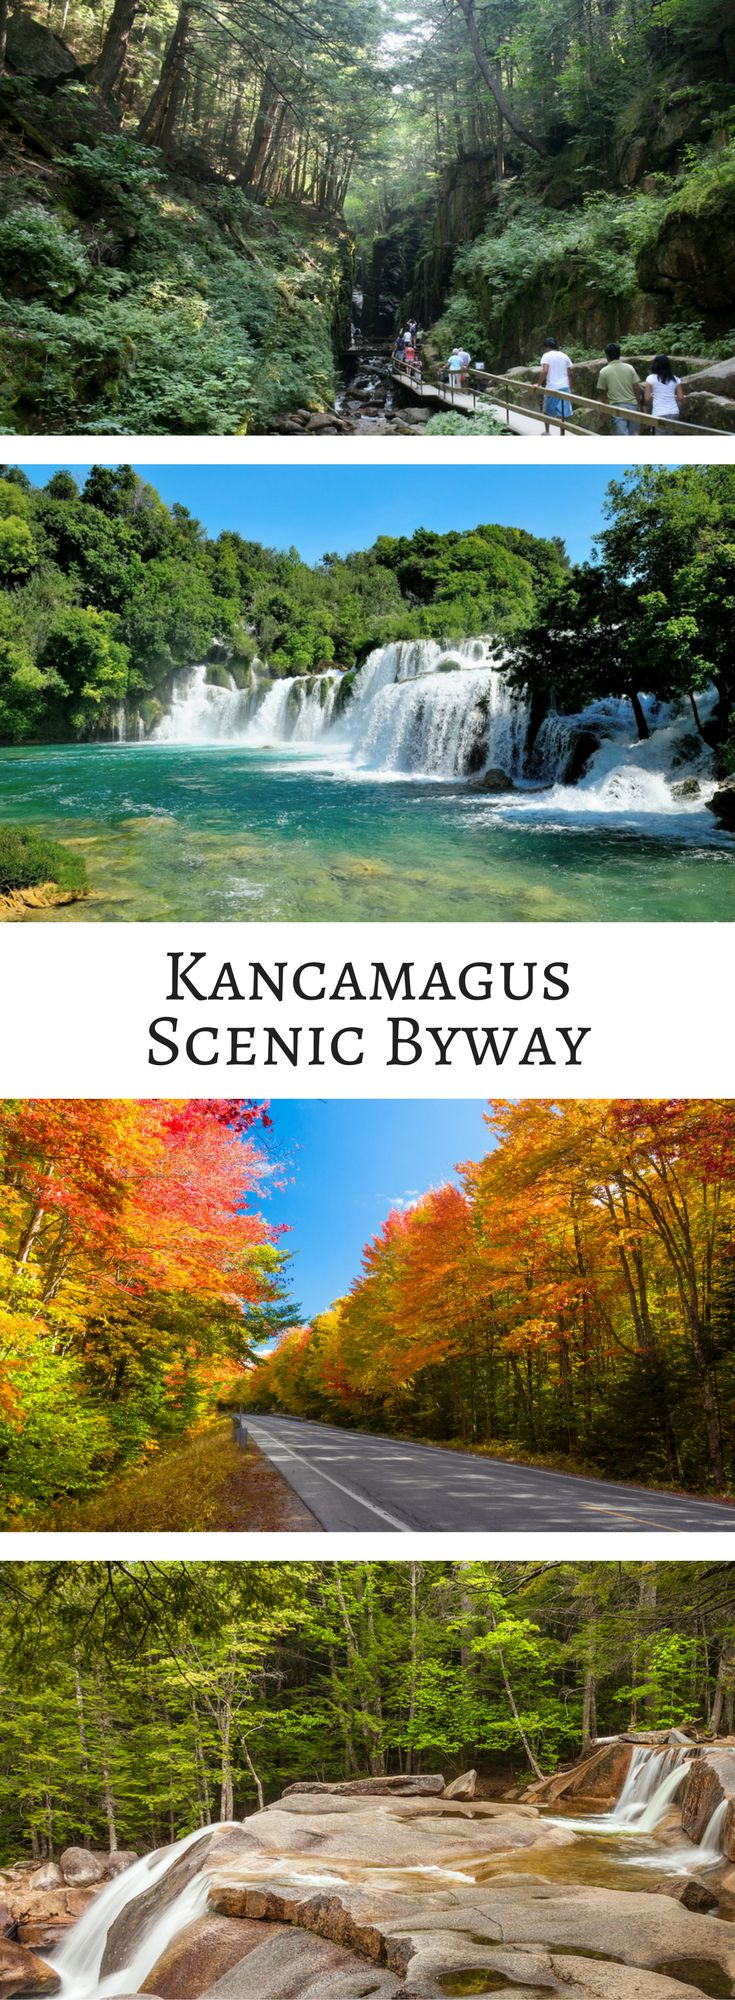 See the best of New England along Kancamagus Scenic Byway: An annual fall favorite!